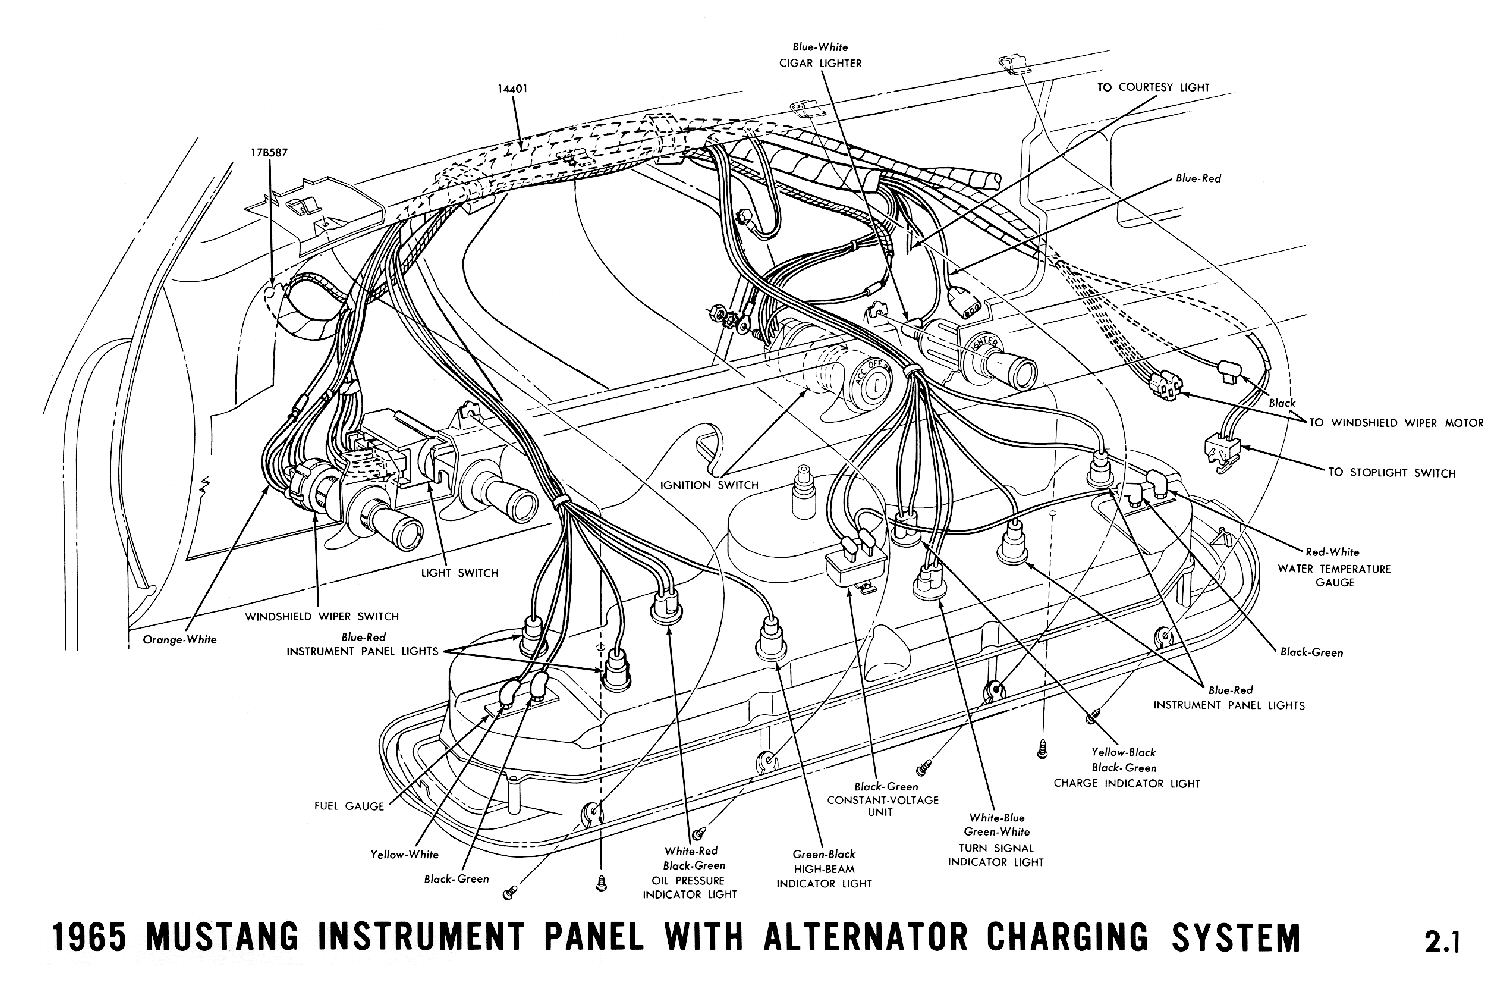 1965 mustang wiring diagrams average joe restoration 1965a 1965 mustang instrument panel alternator